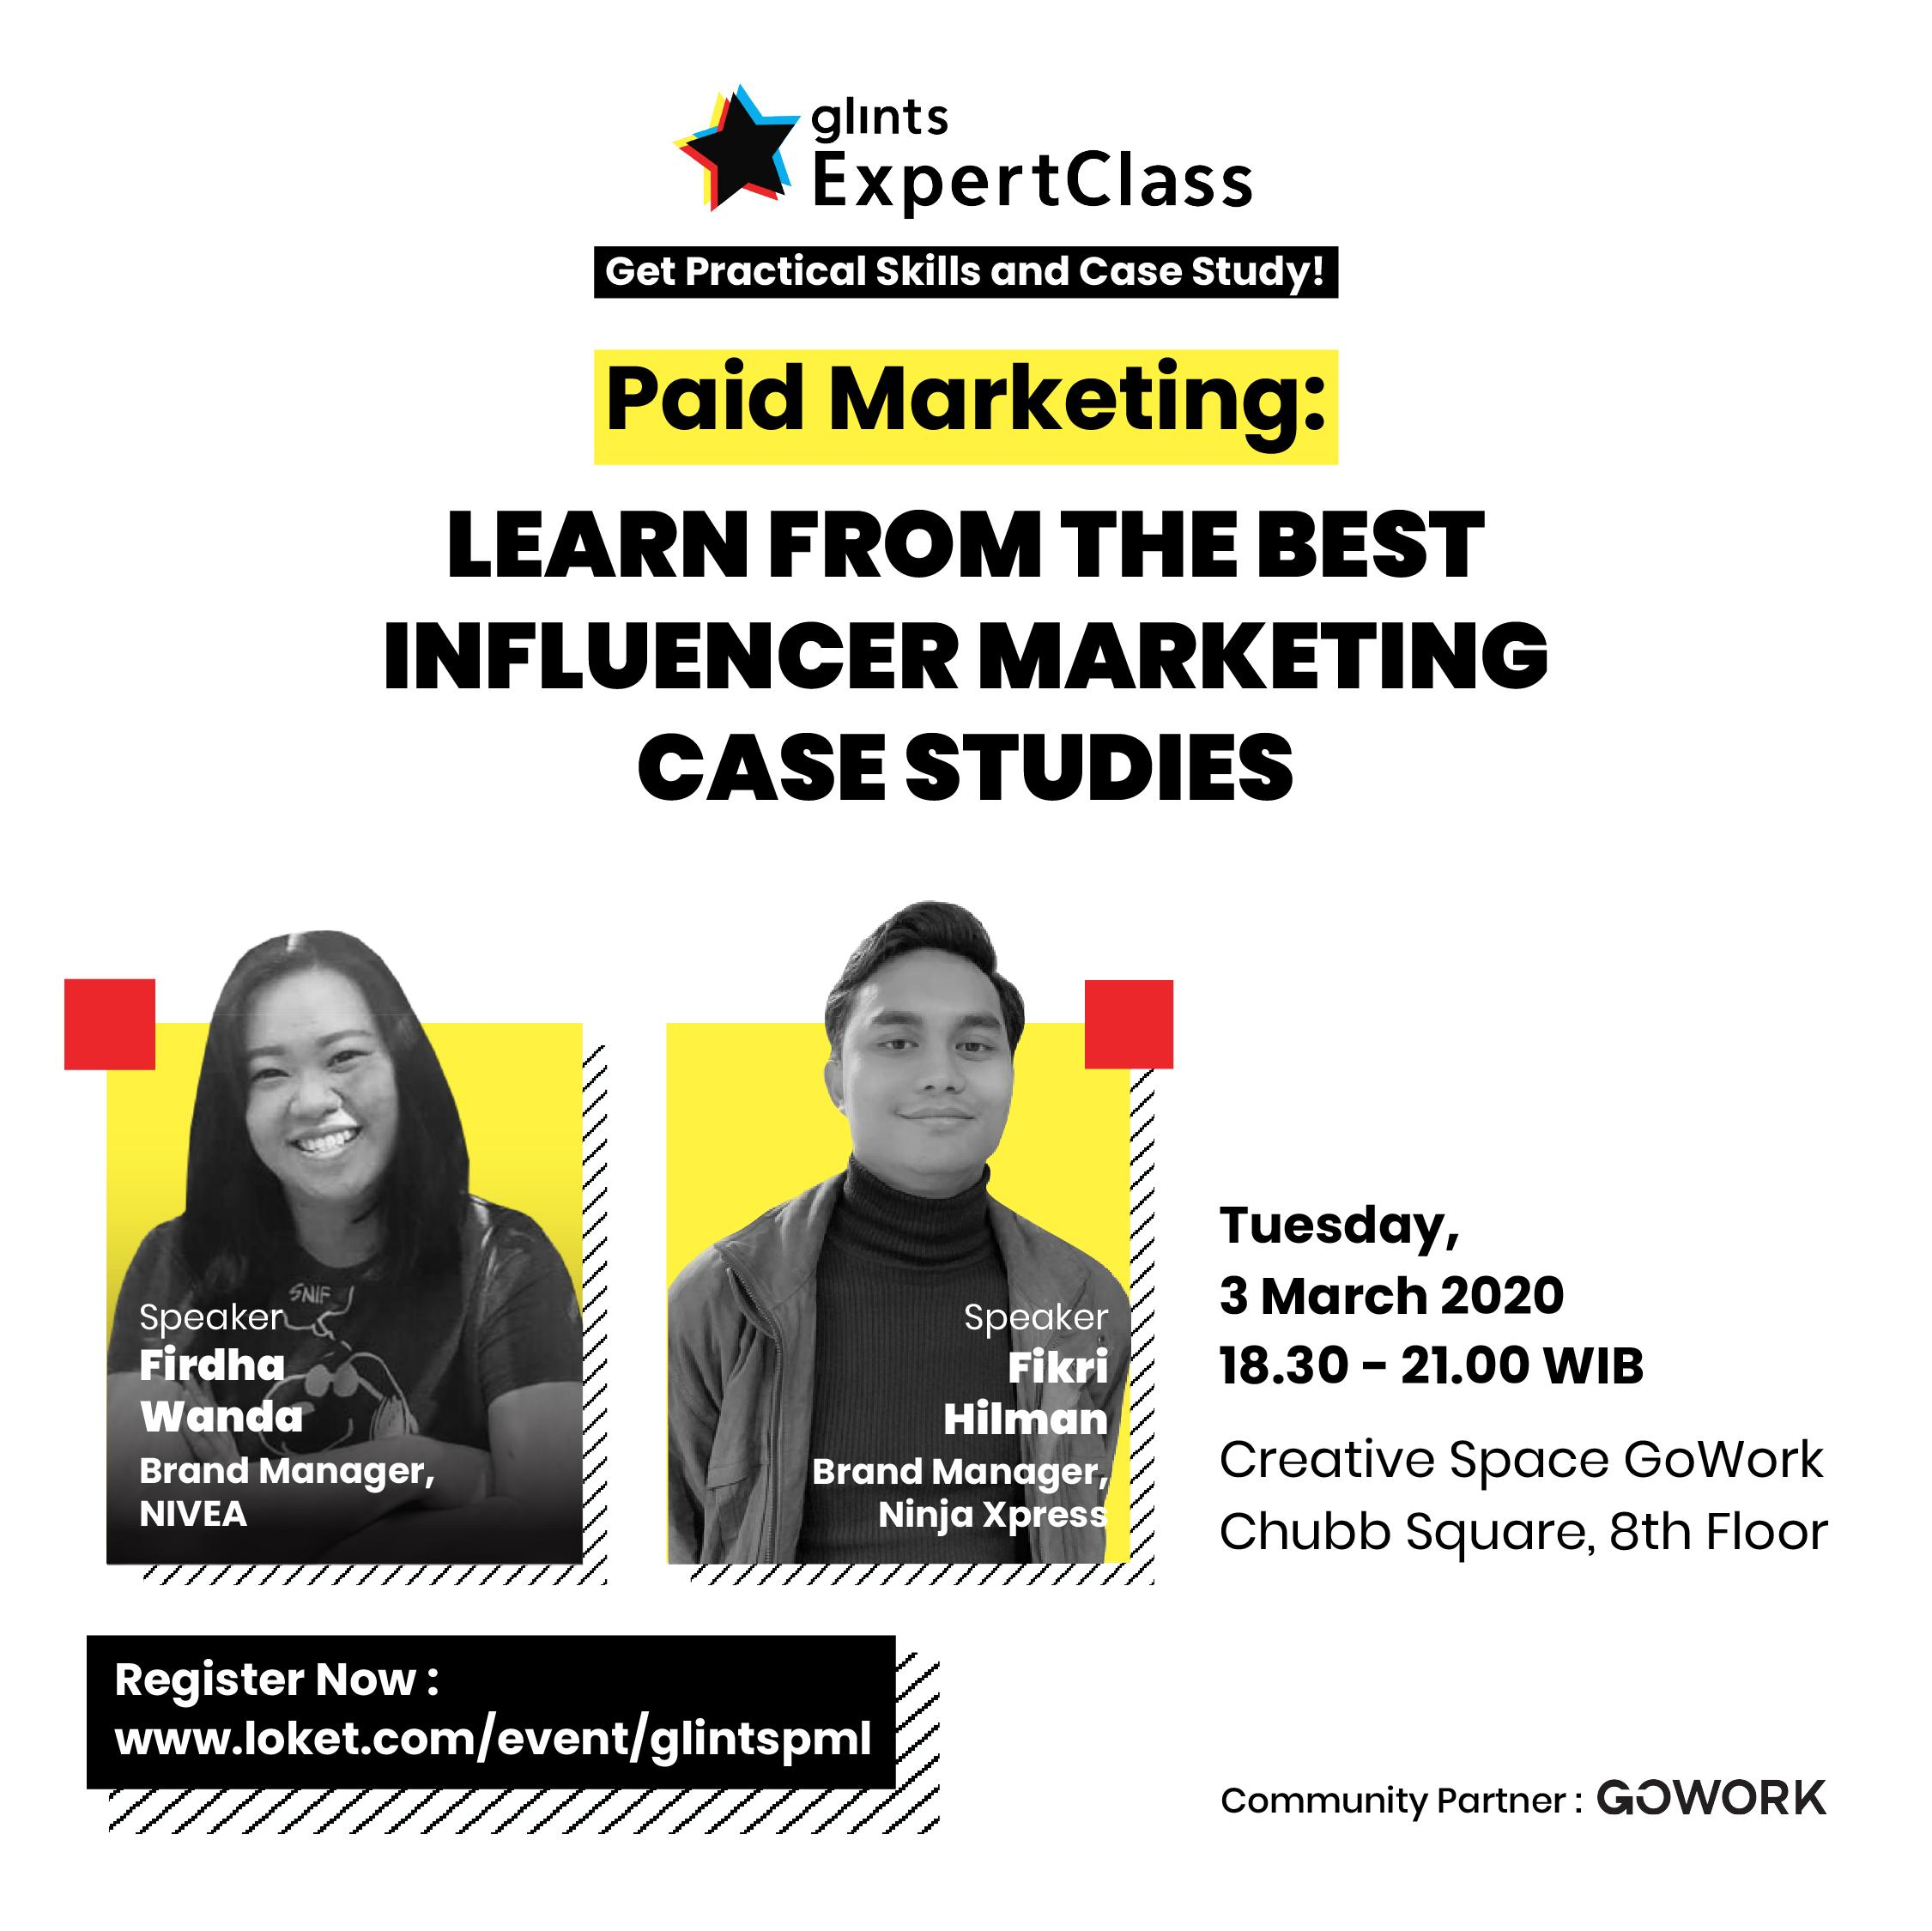 Glints Expert Class - Paid Marketing : Learn from the Best Influencer Marketing Case Studies